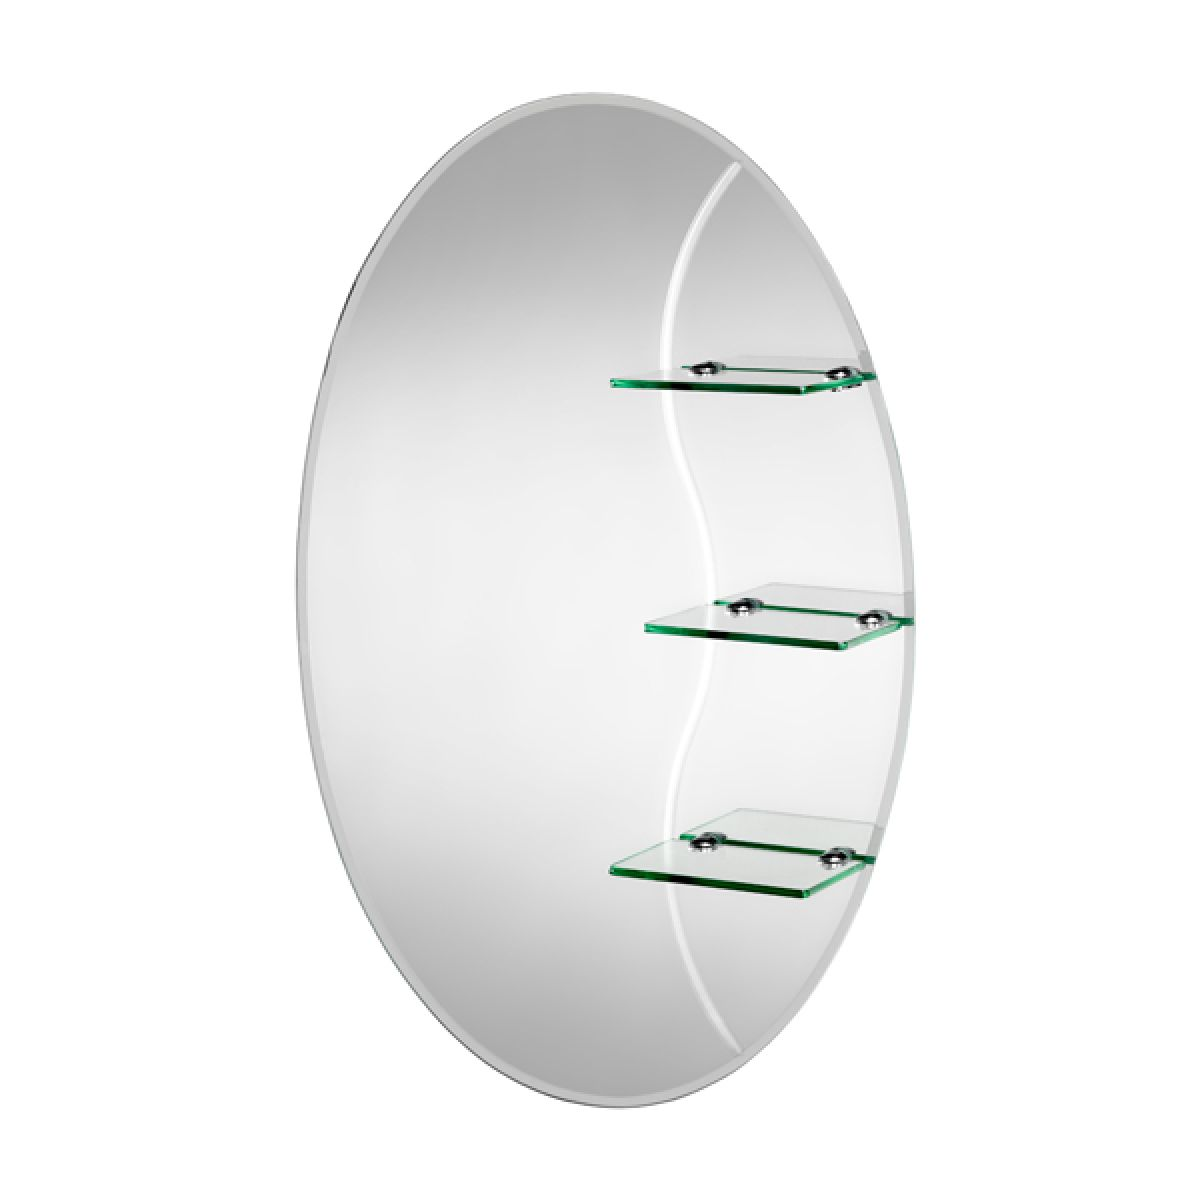 Croydex Coniston Oval Mirror with Shelves